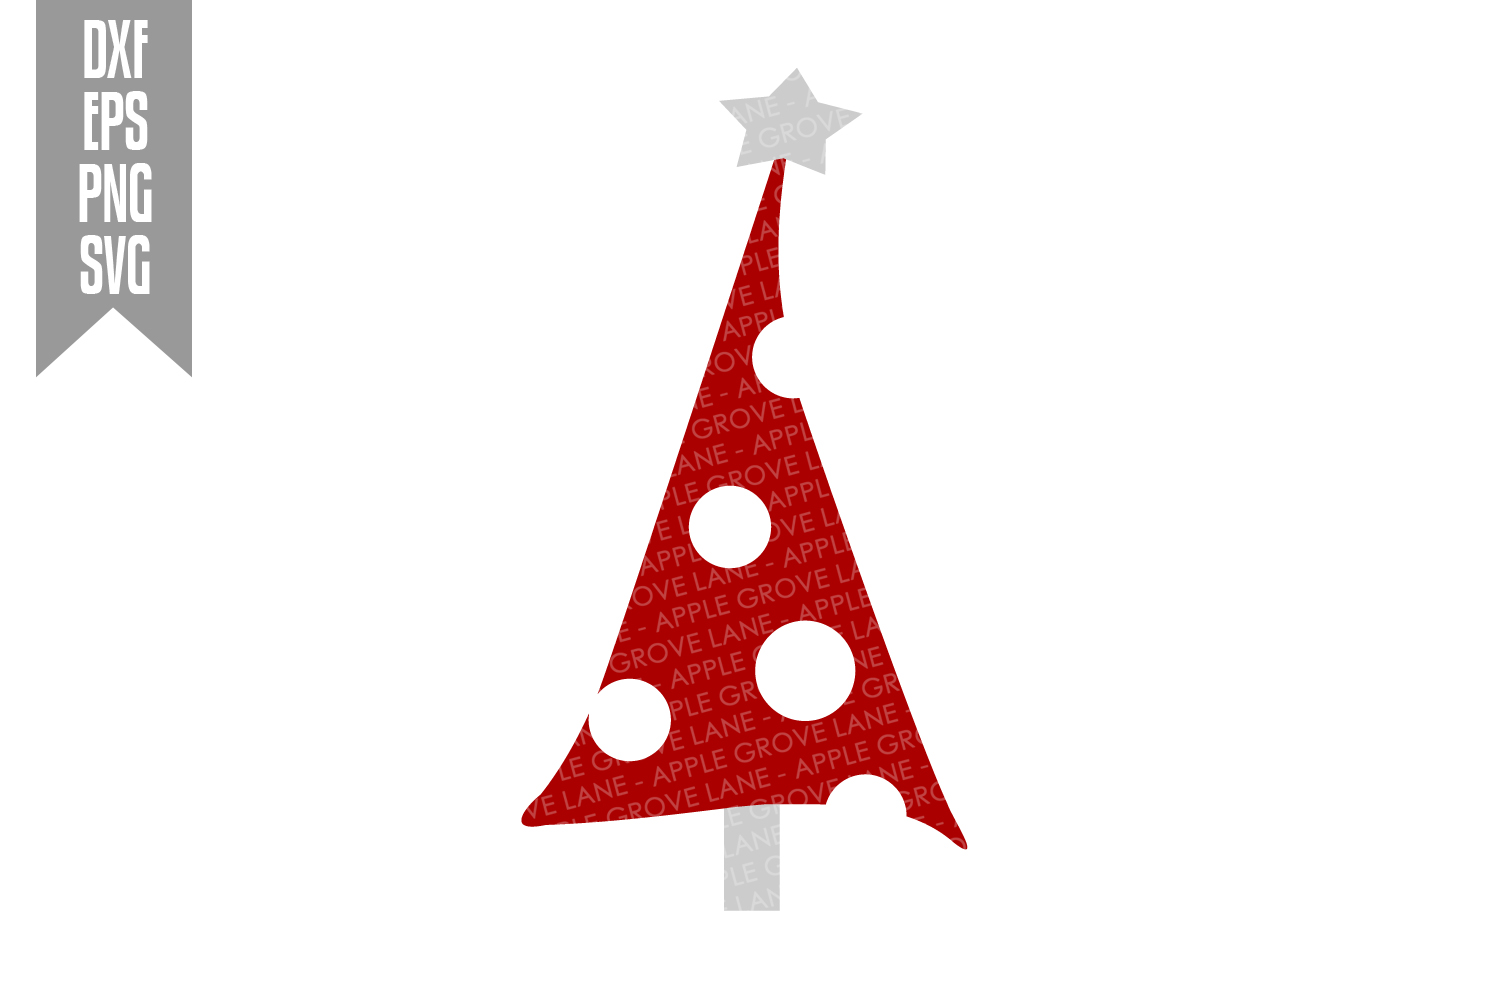 Christmas Tree Svg Bundle - 6 designs included - Svg File example image 6